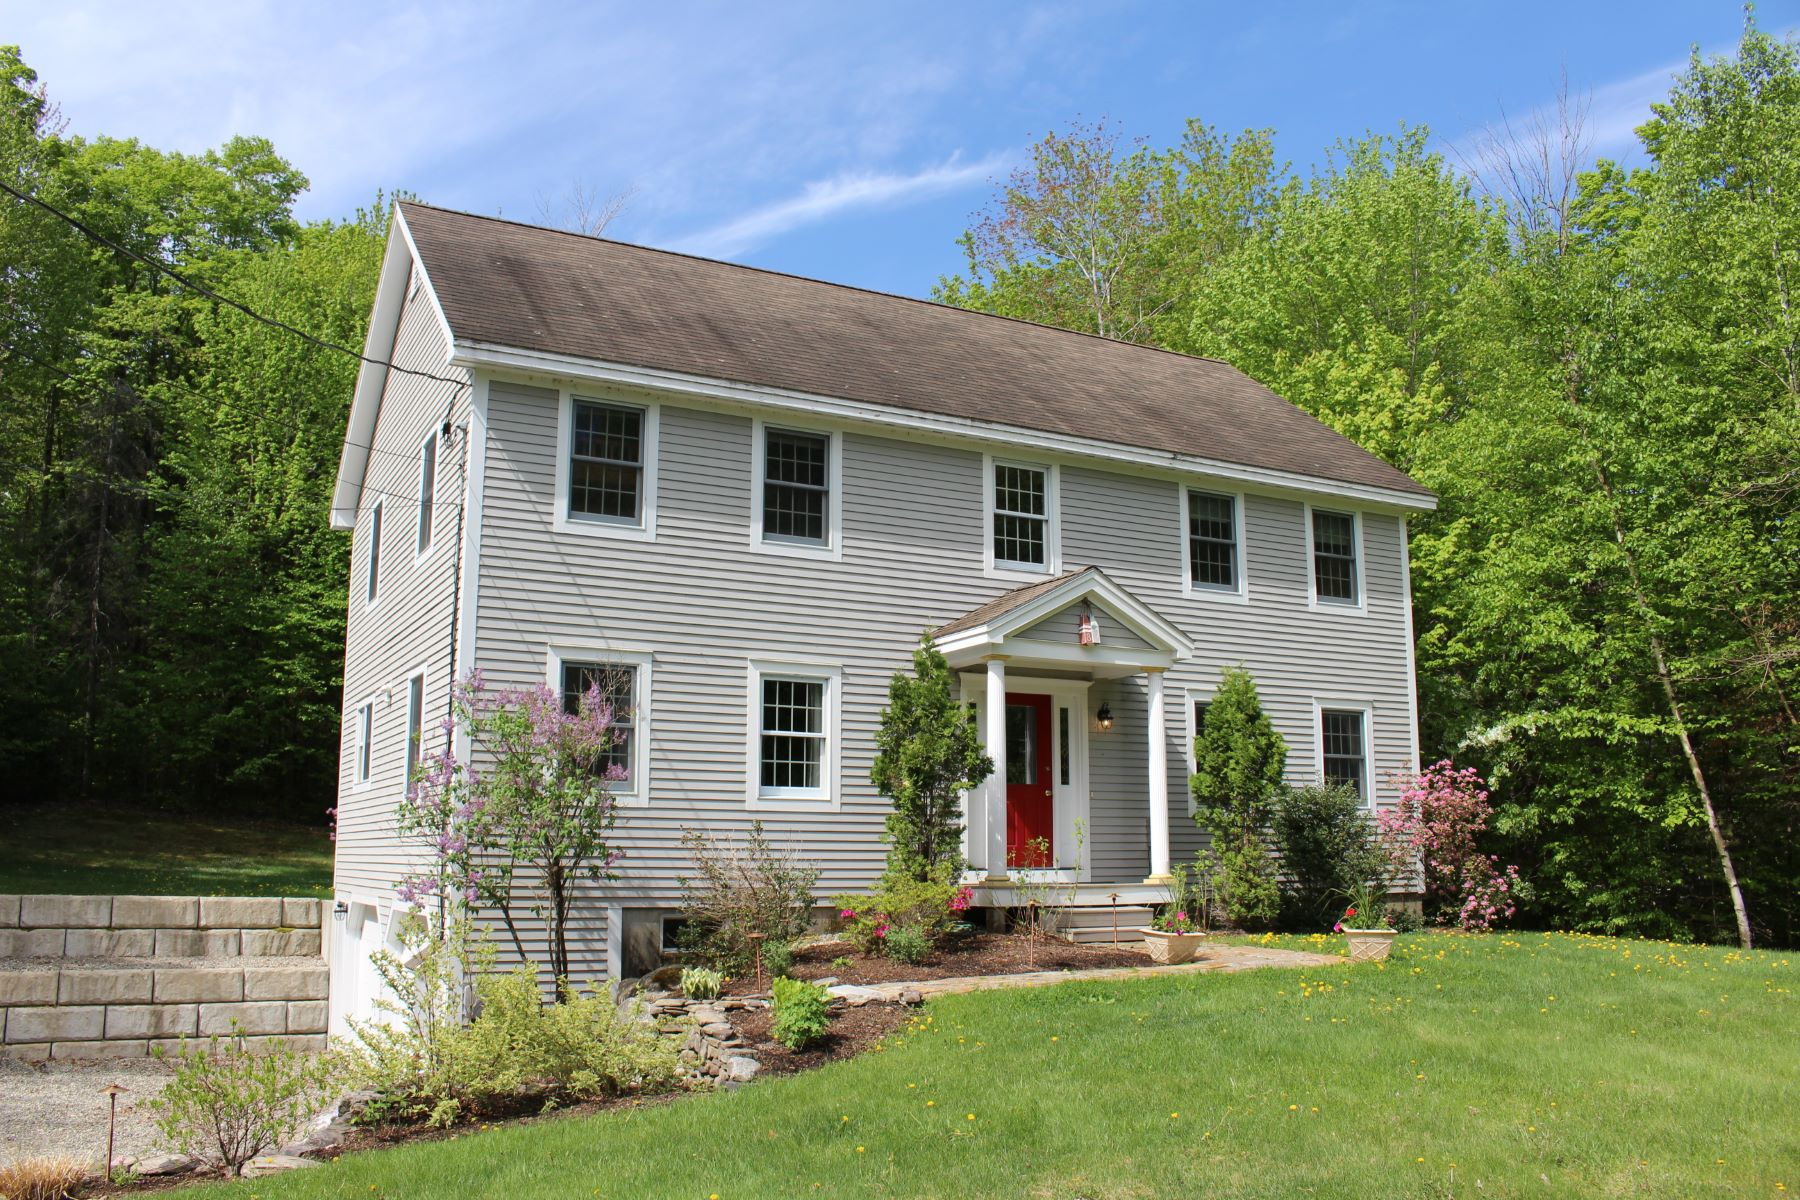 Single Family Home for Sale at Charming New London Colonial 89 Northwood Ln New London, New Hampshire 03257 United States